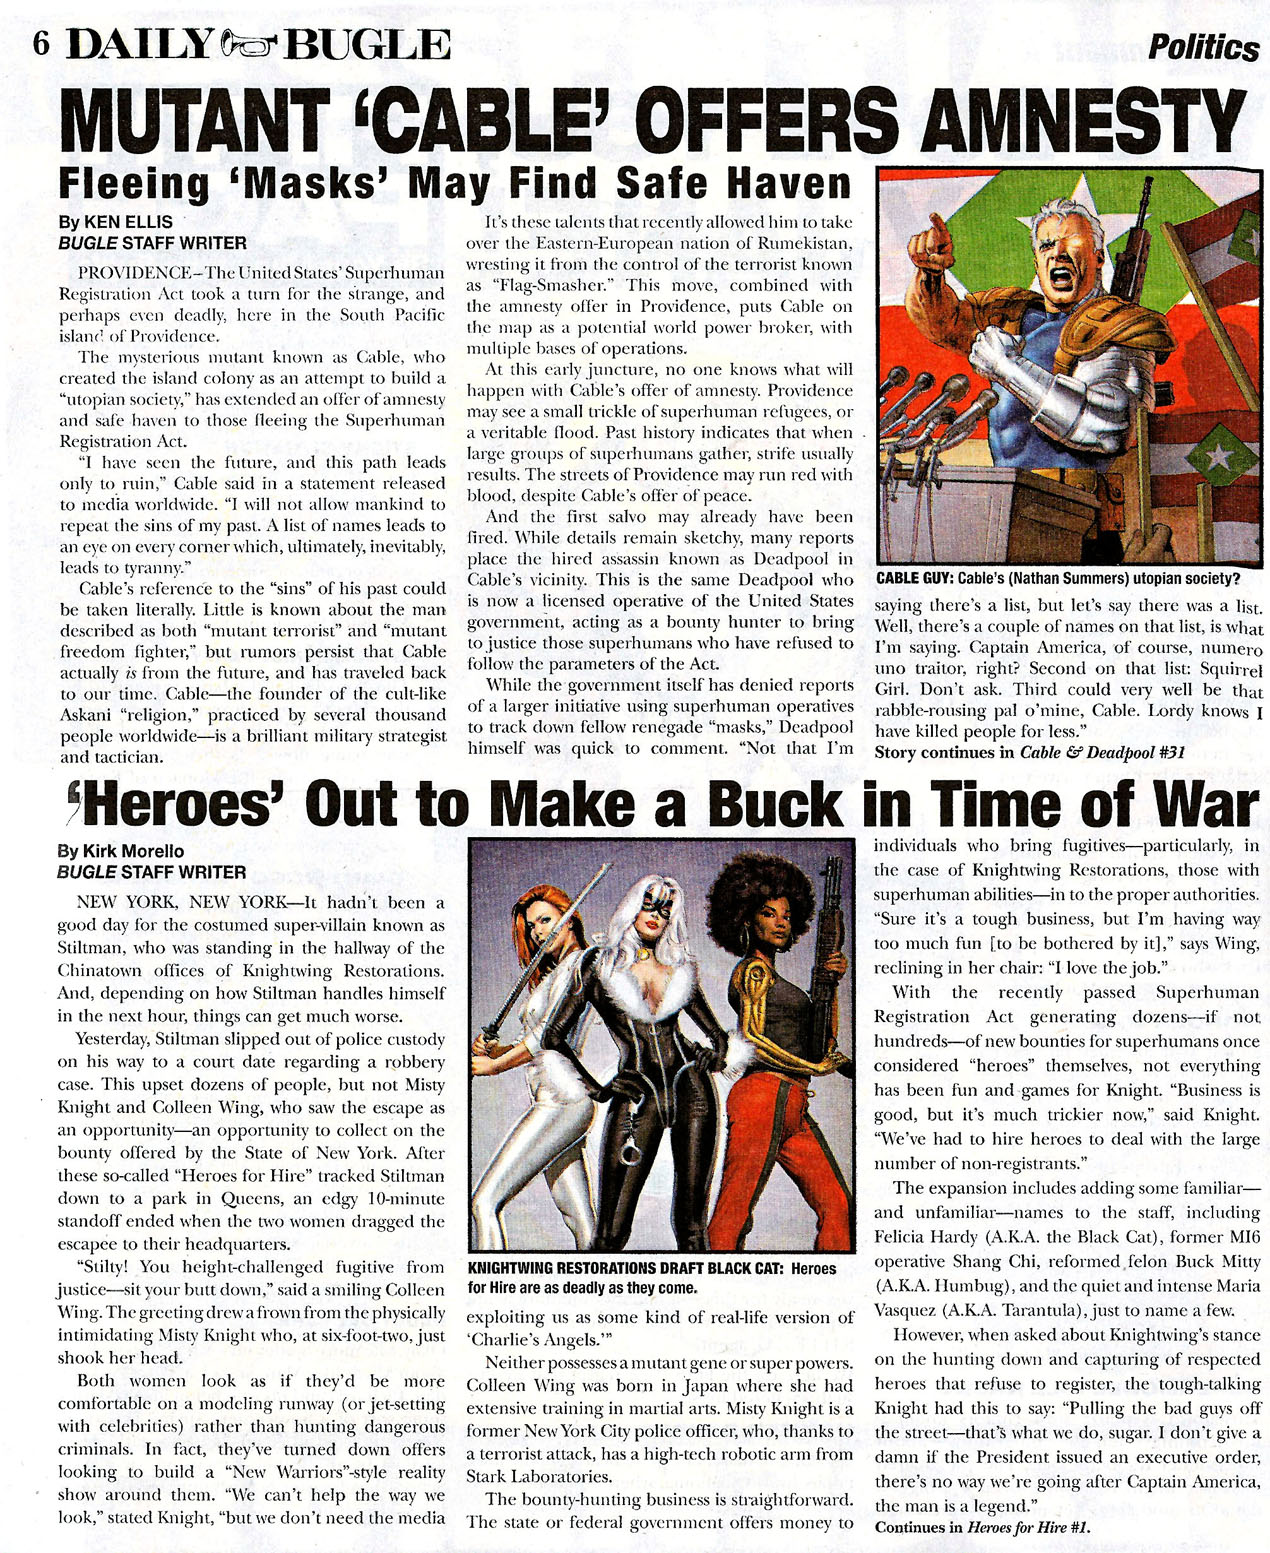 Read online Daily Bugle (2006) comic -  Issue #0 - 6